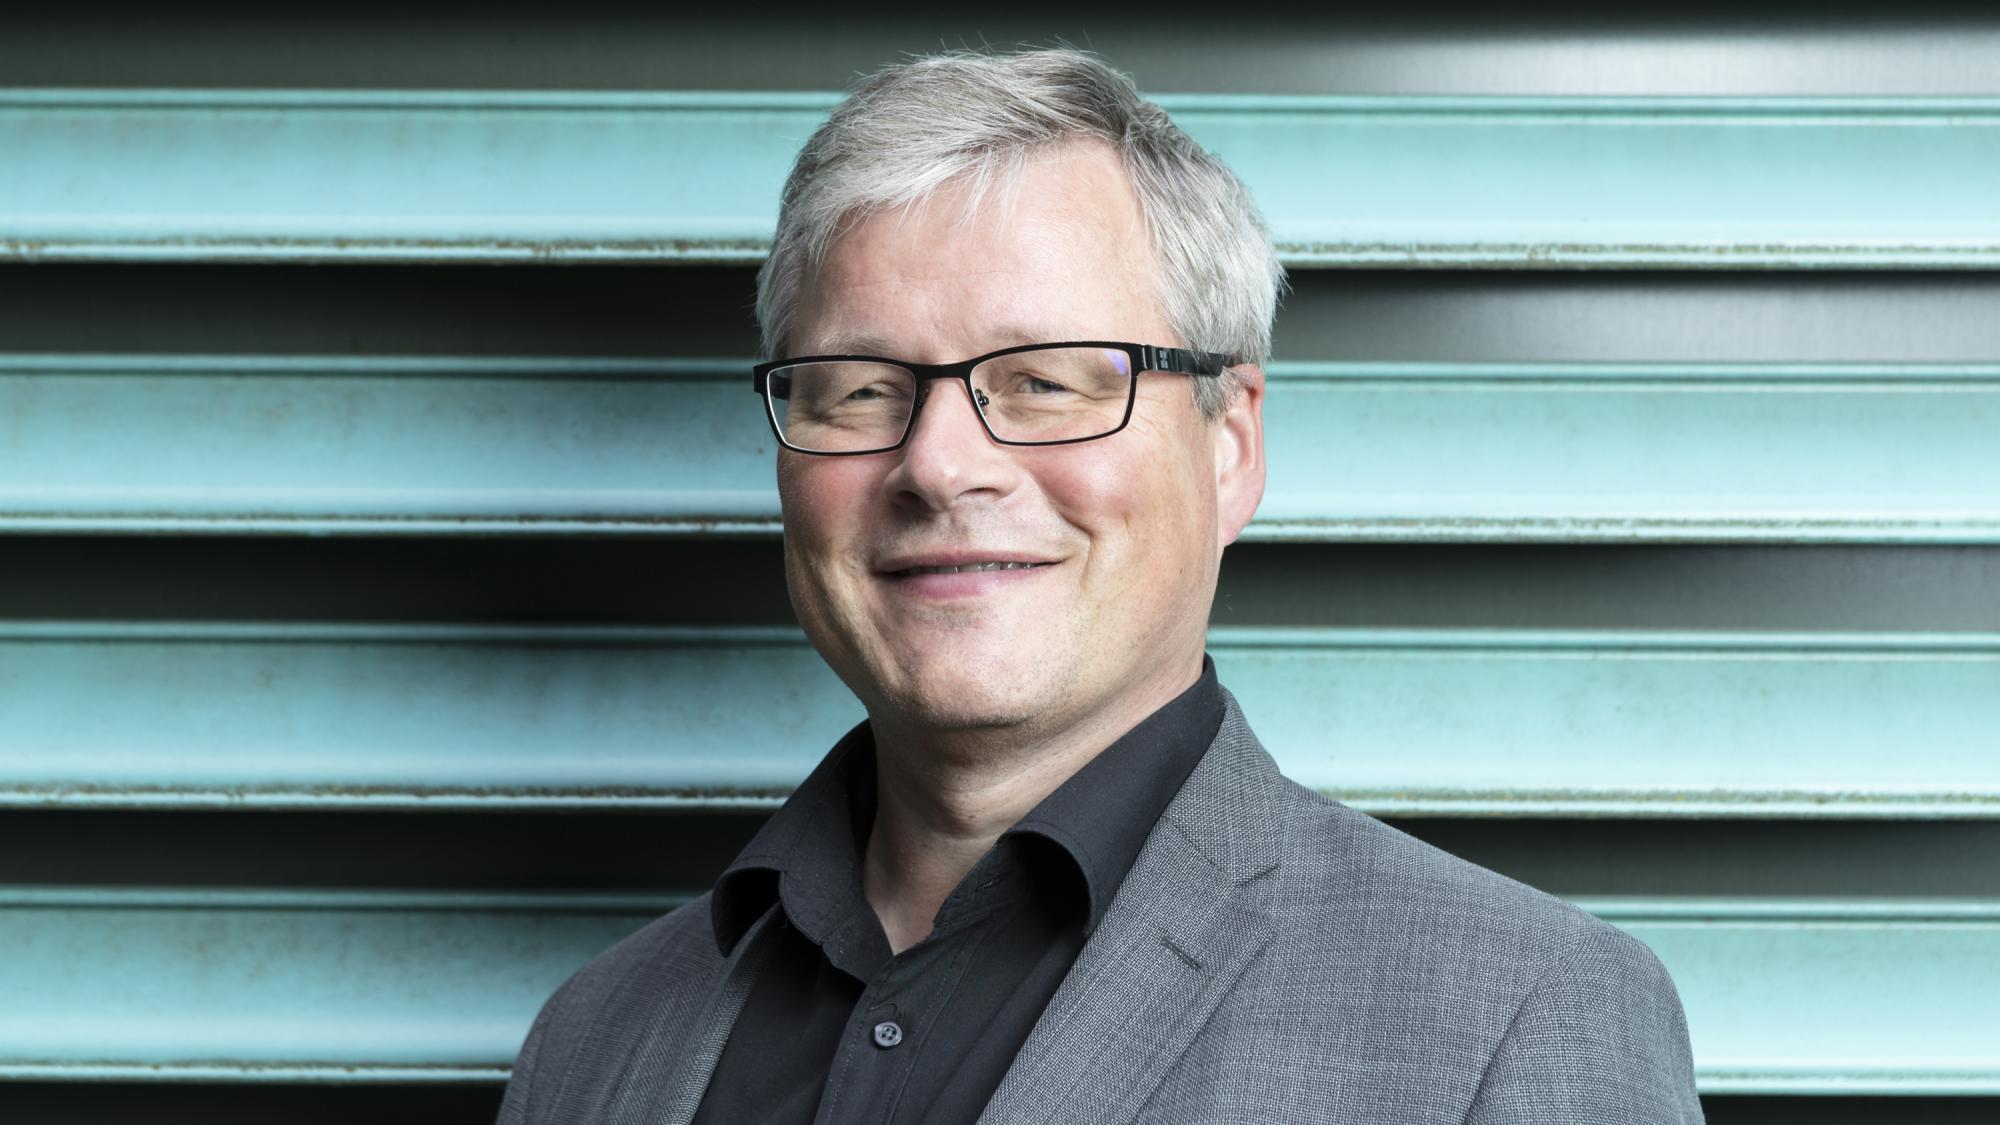 Jukka Riekki - Professor of Embedded Software Architectures at the University of Oulu